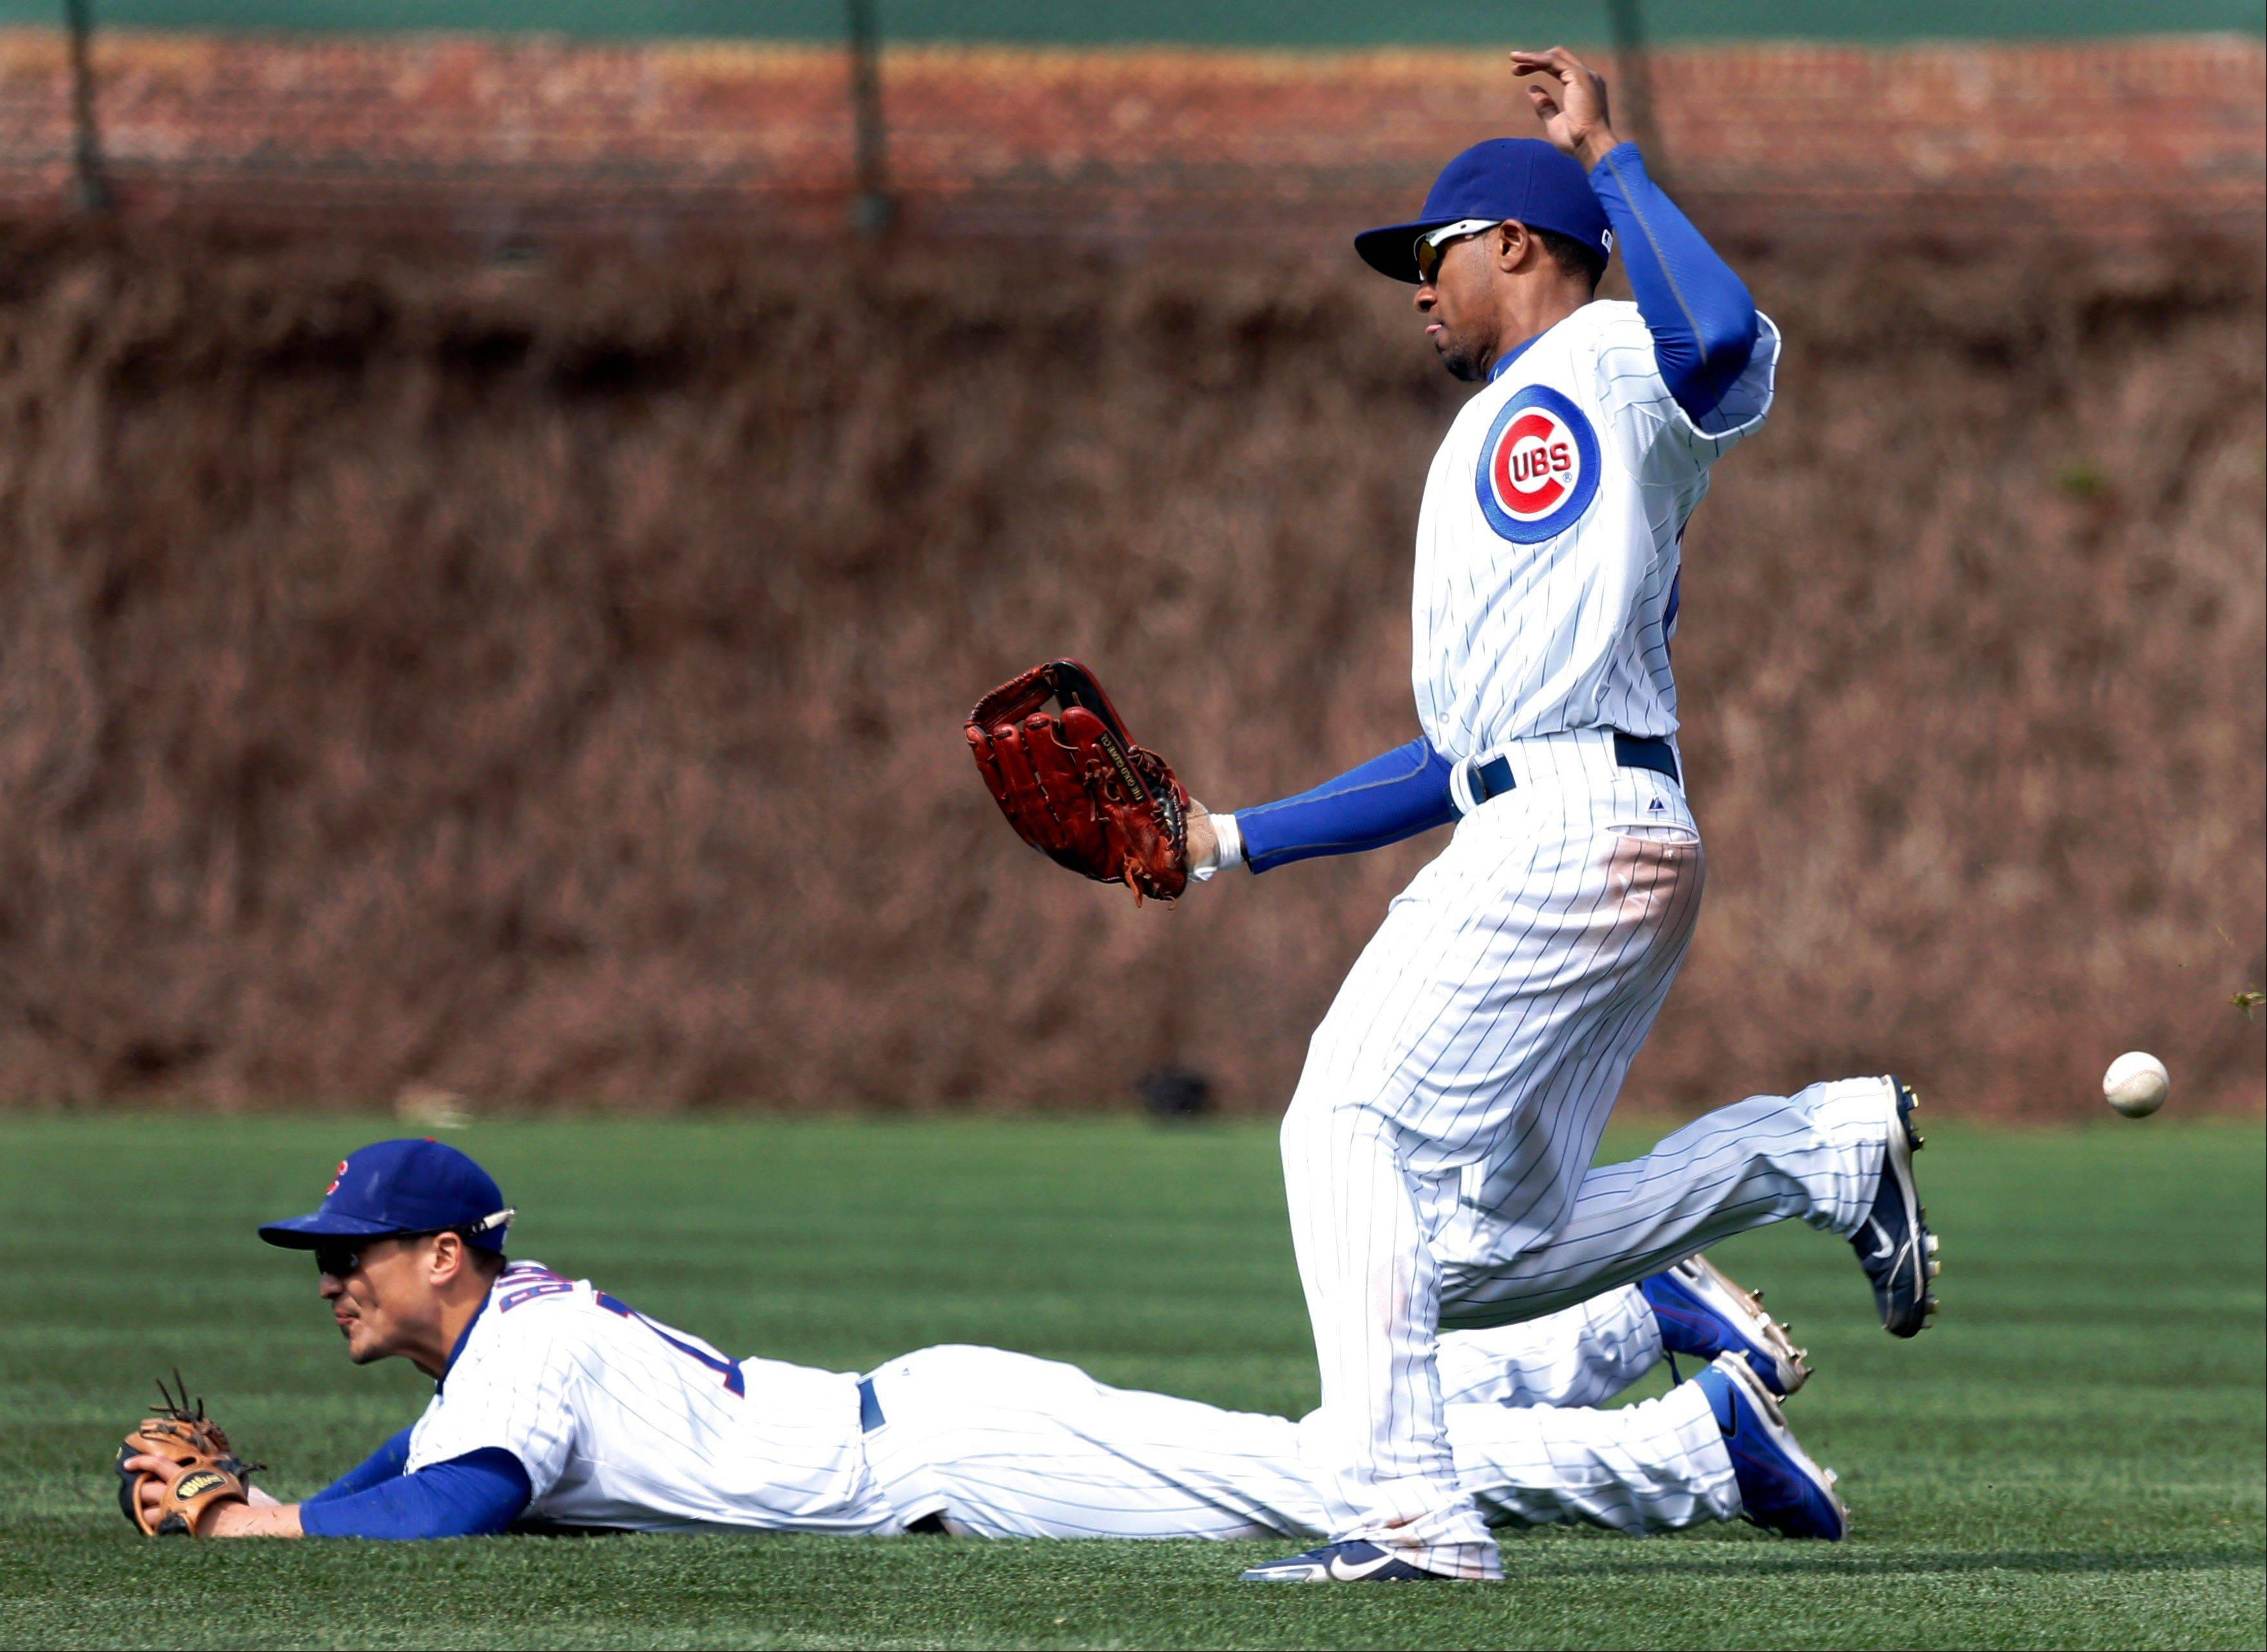 Cubs right fielder Julio Borbon, right, fails to catch a shallow pop fly off the bat of San Diego Padres' Yonder Alonso in the eighth inning as second baseman Darwin Barney falls to the turf Thursday at Wrigley. The Cubs lost 4-2.